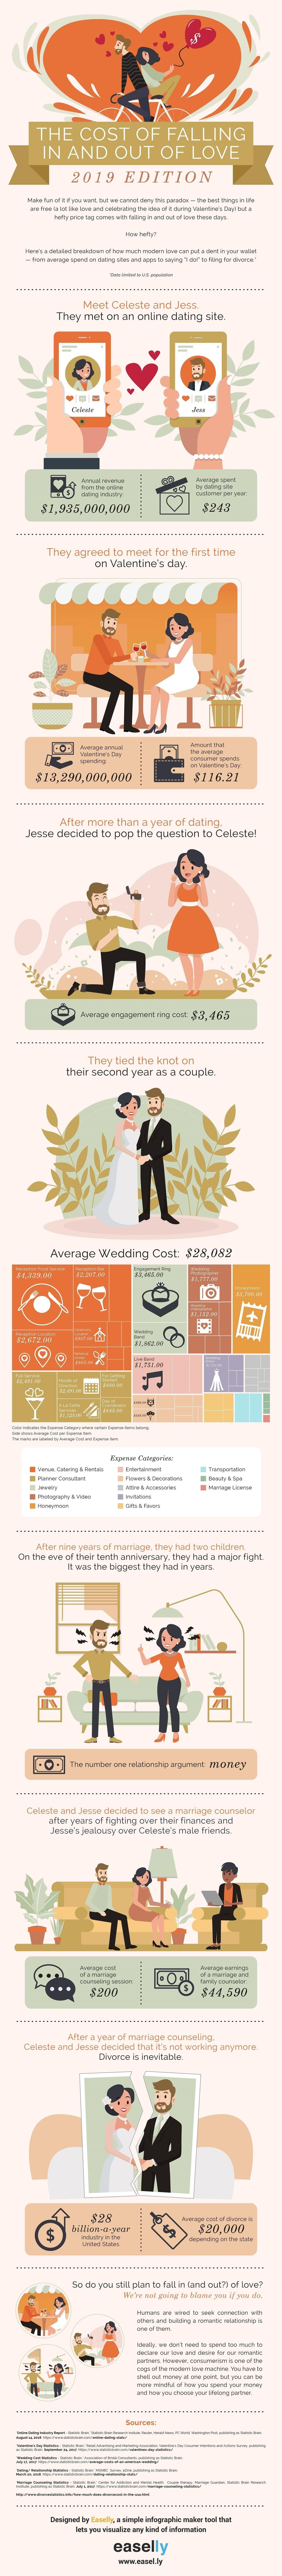 The Cost of Falling In and Out of Love: 2019 Edition #infographic